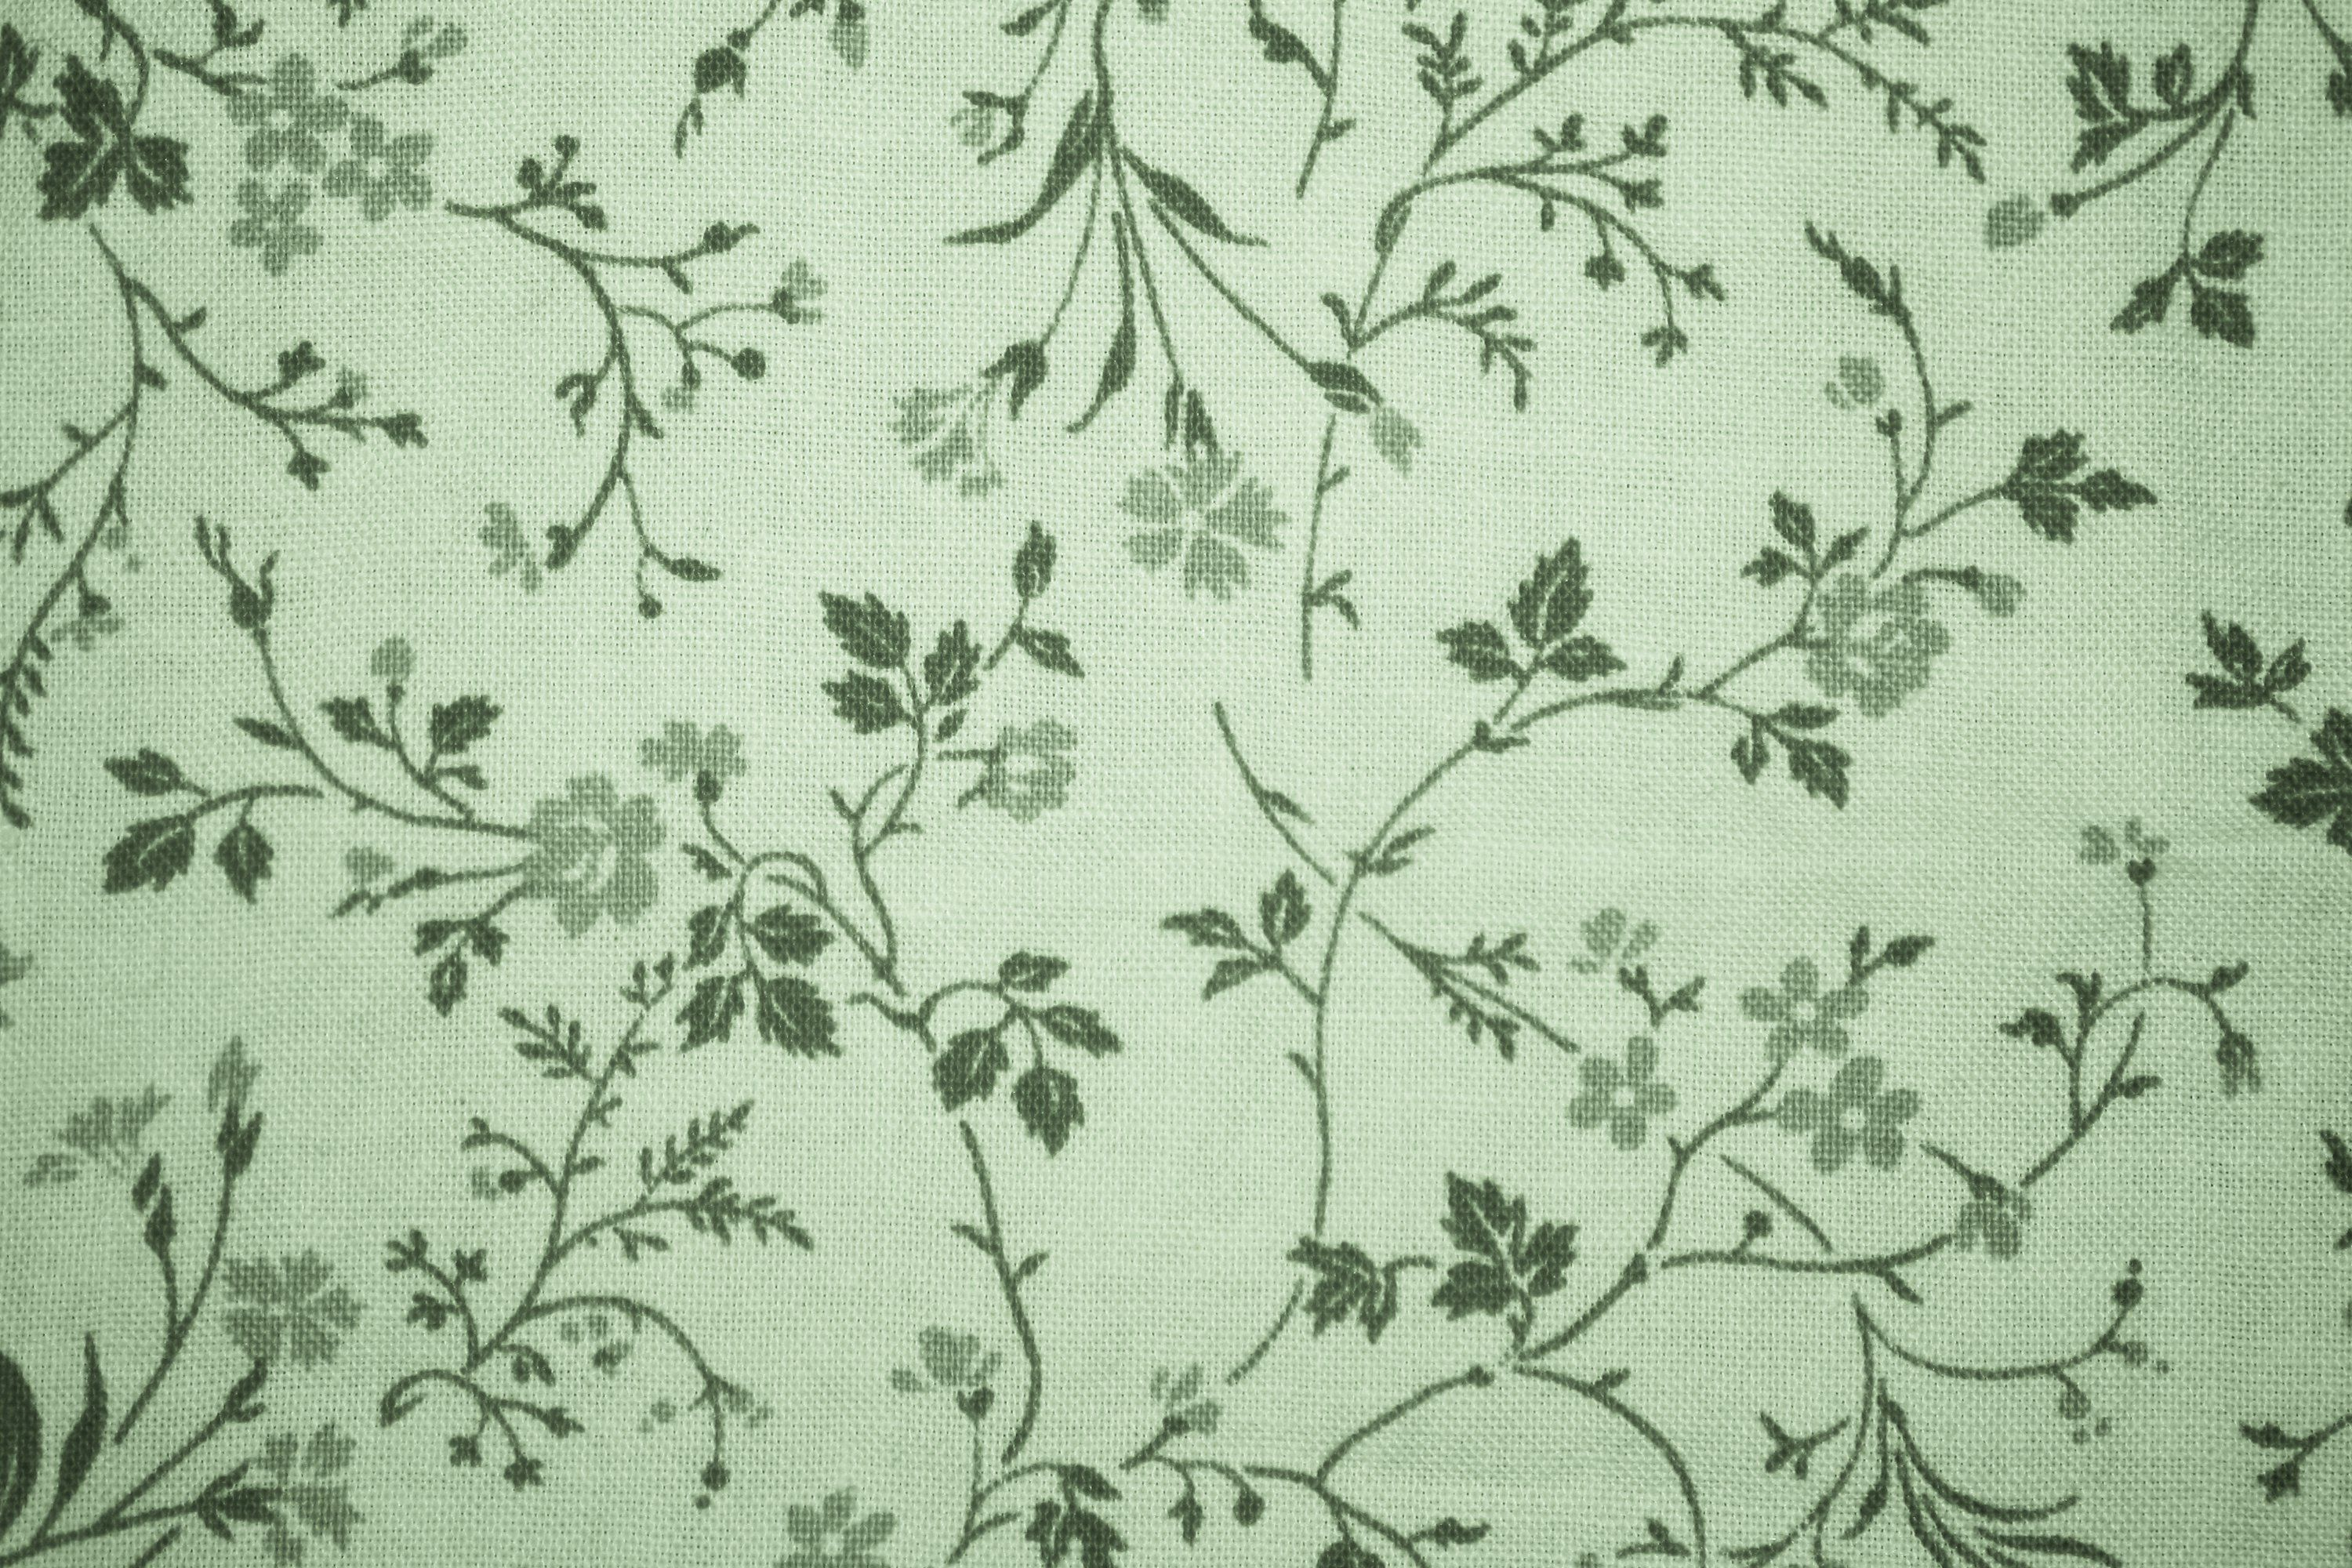 Sage Green Floral Print Fabric Texture Floral Print Background